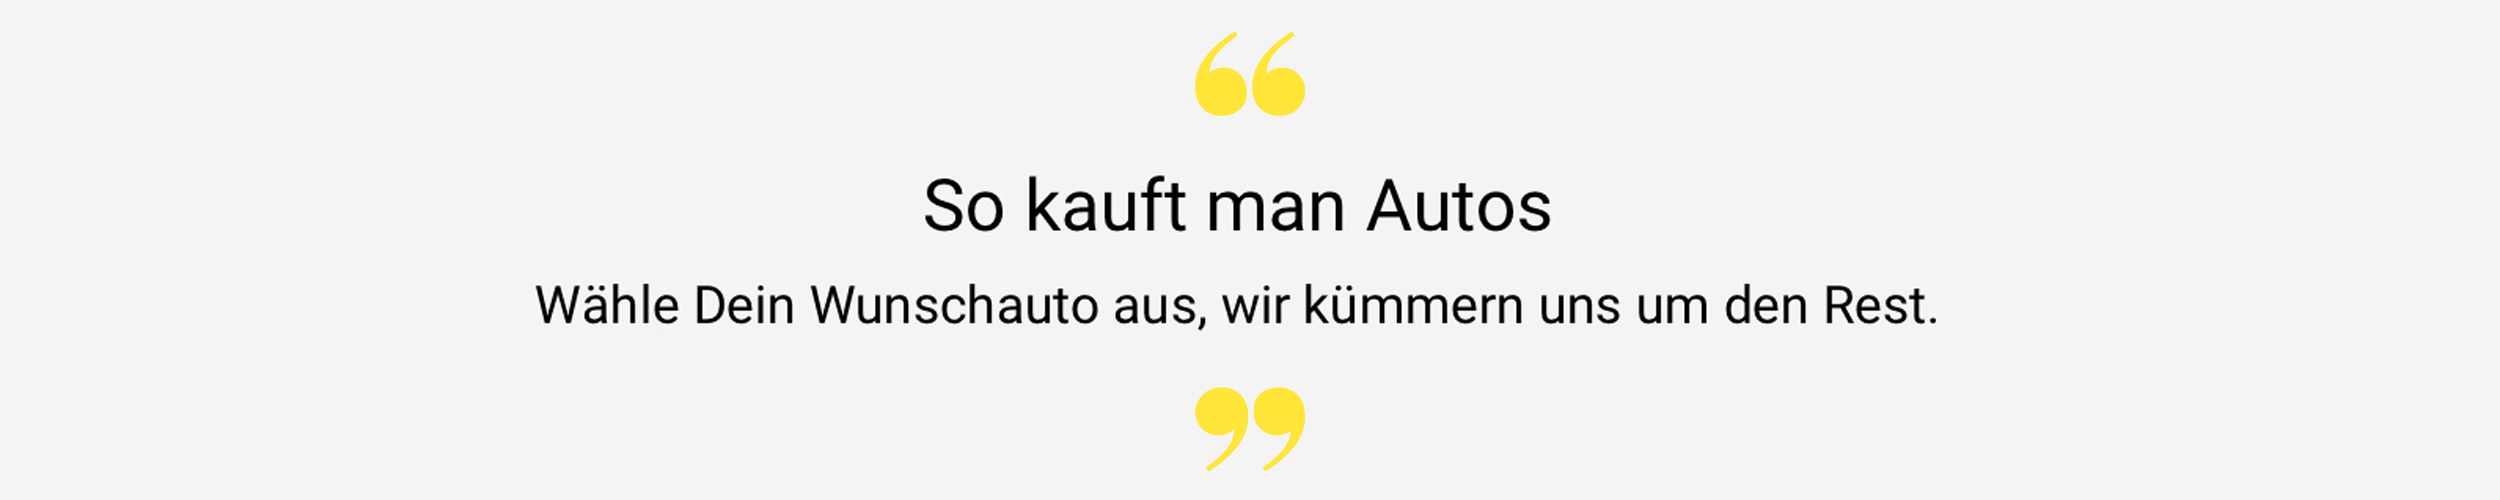 So kauft man Autos